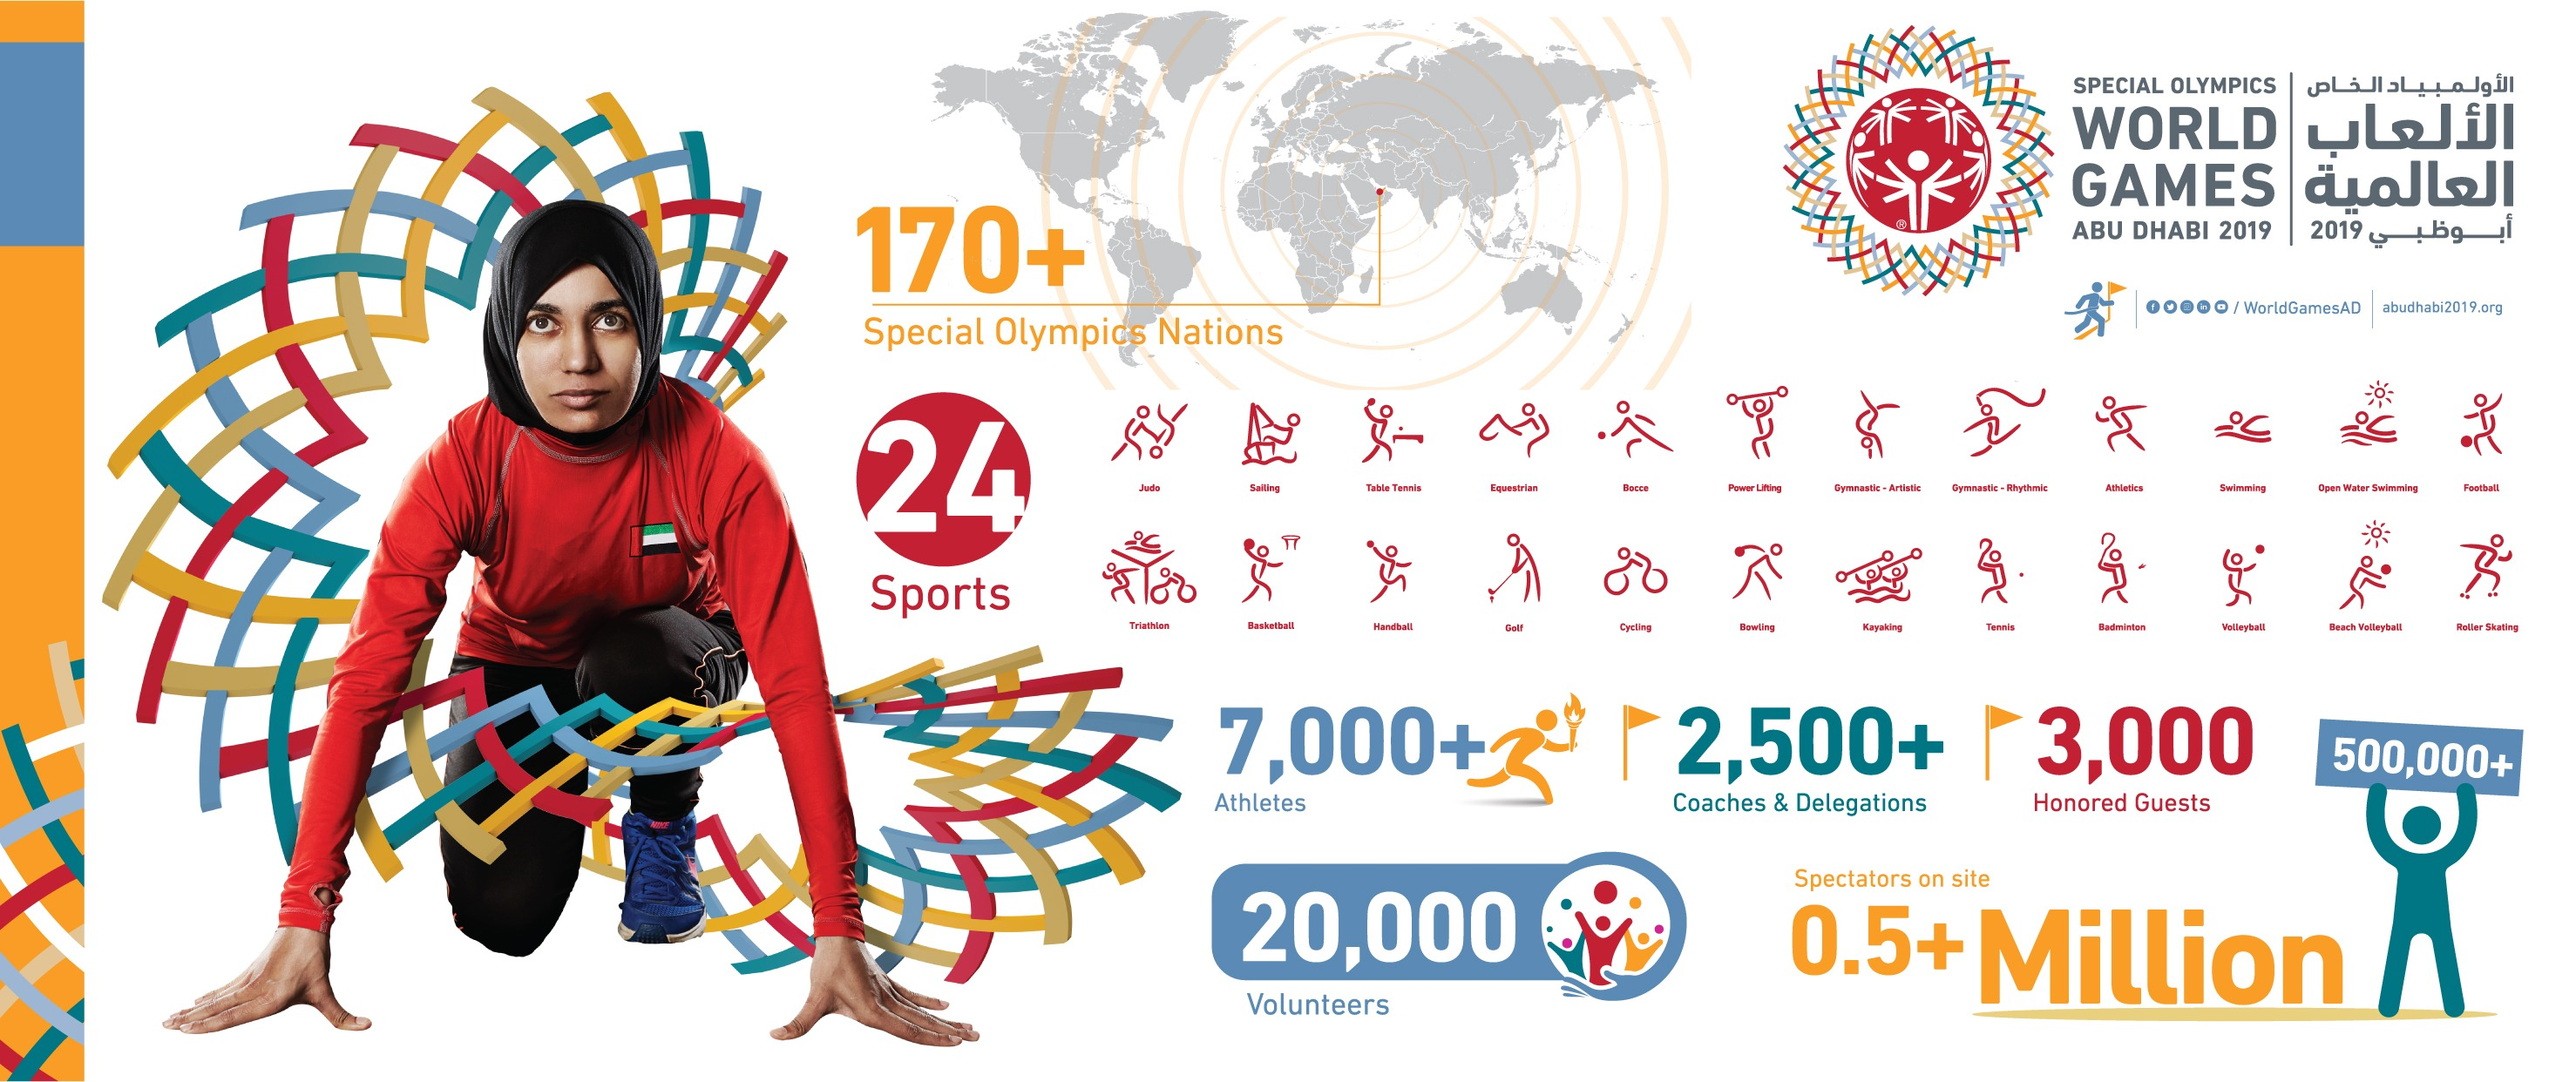 Image result for Special Olympics World Games Abu Dhabi 2019 images